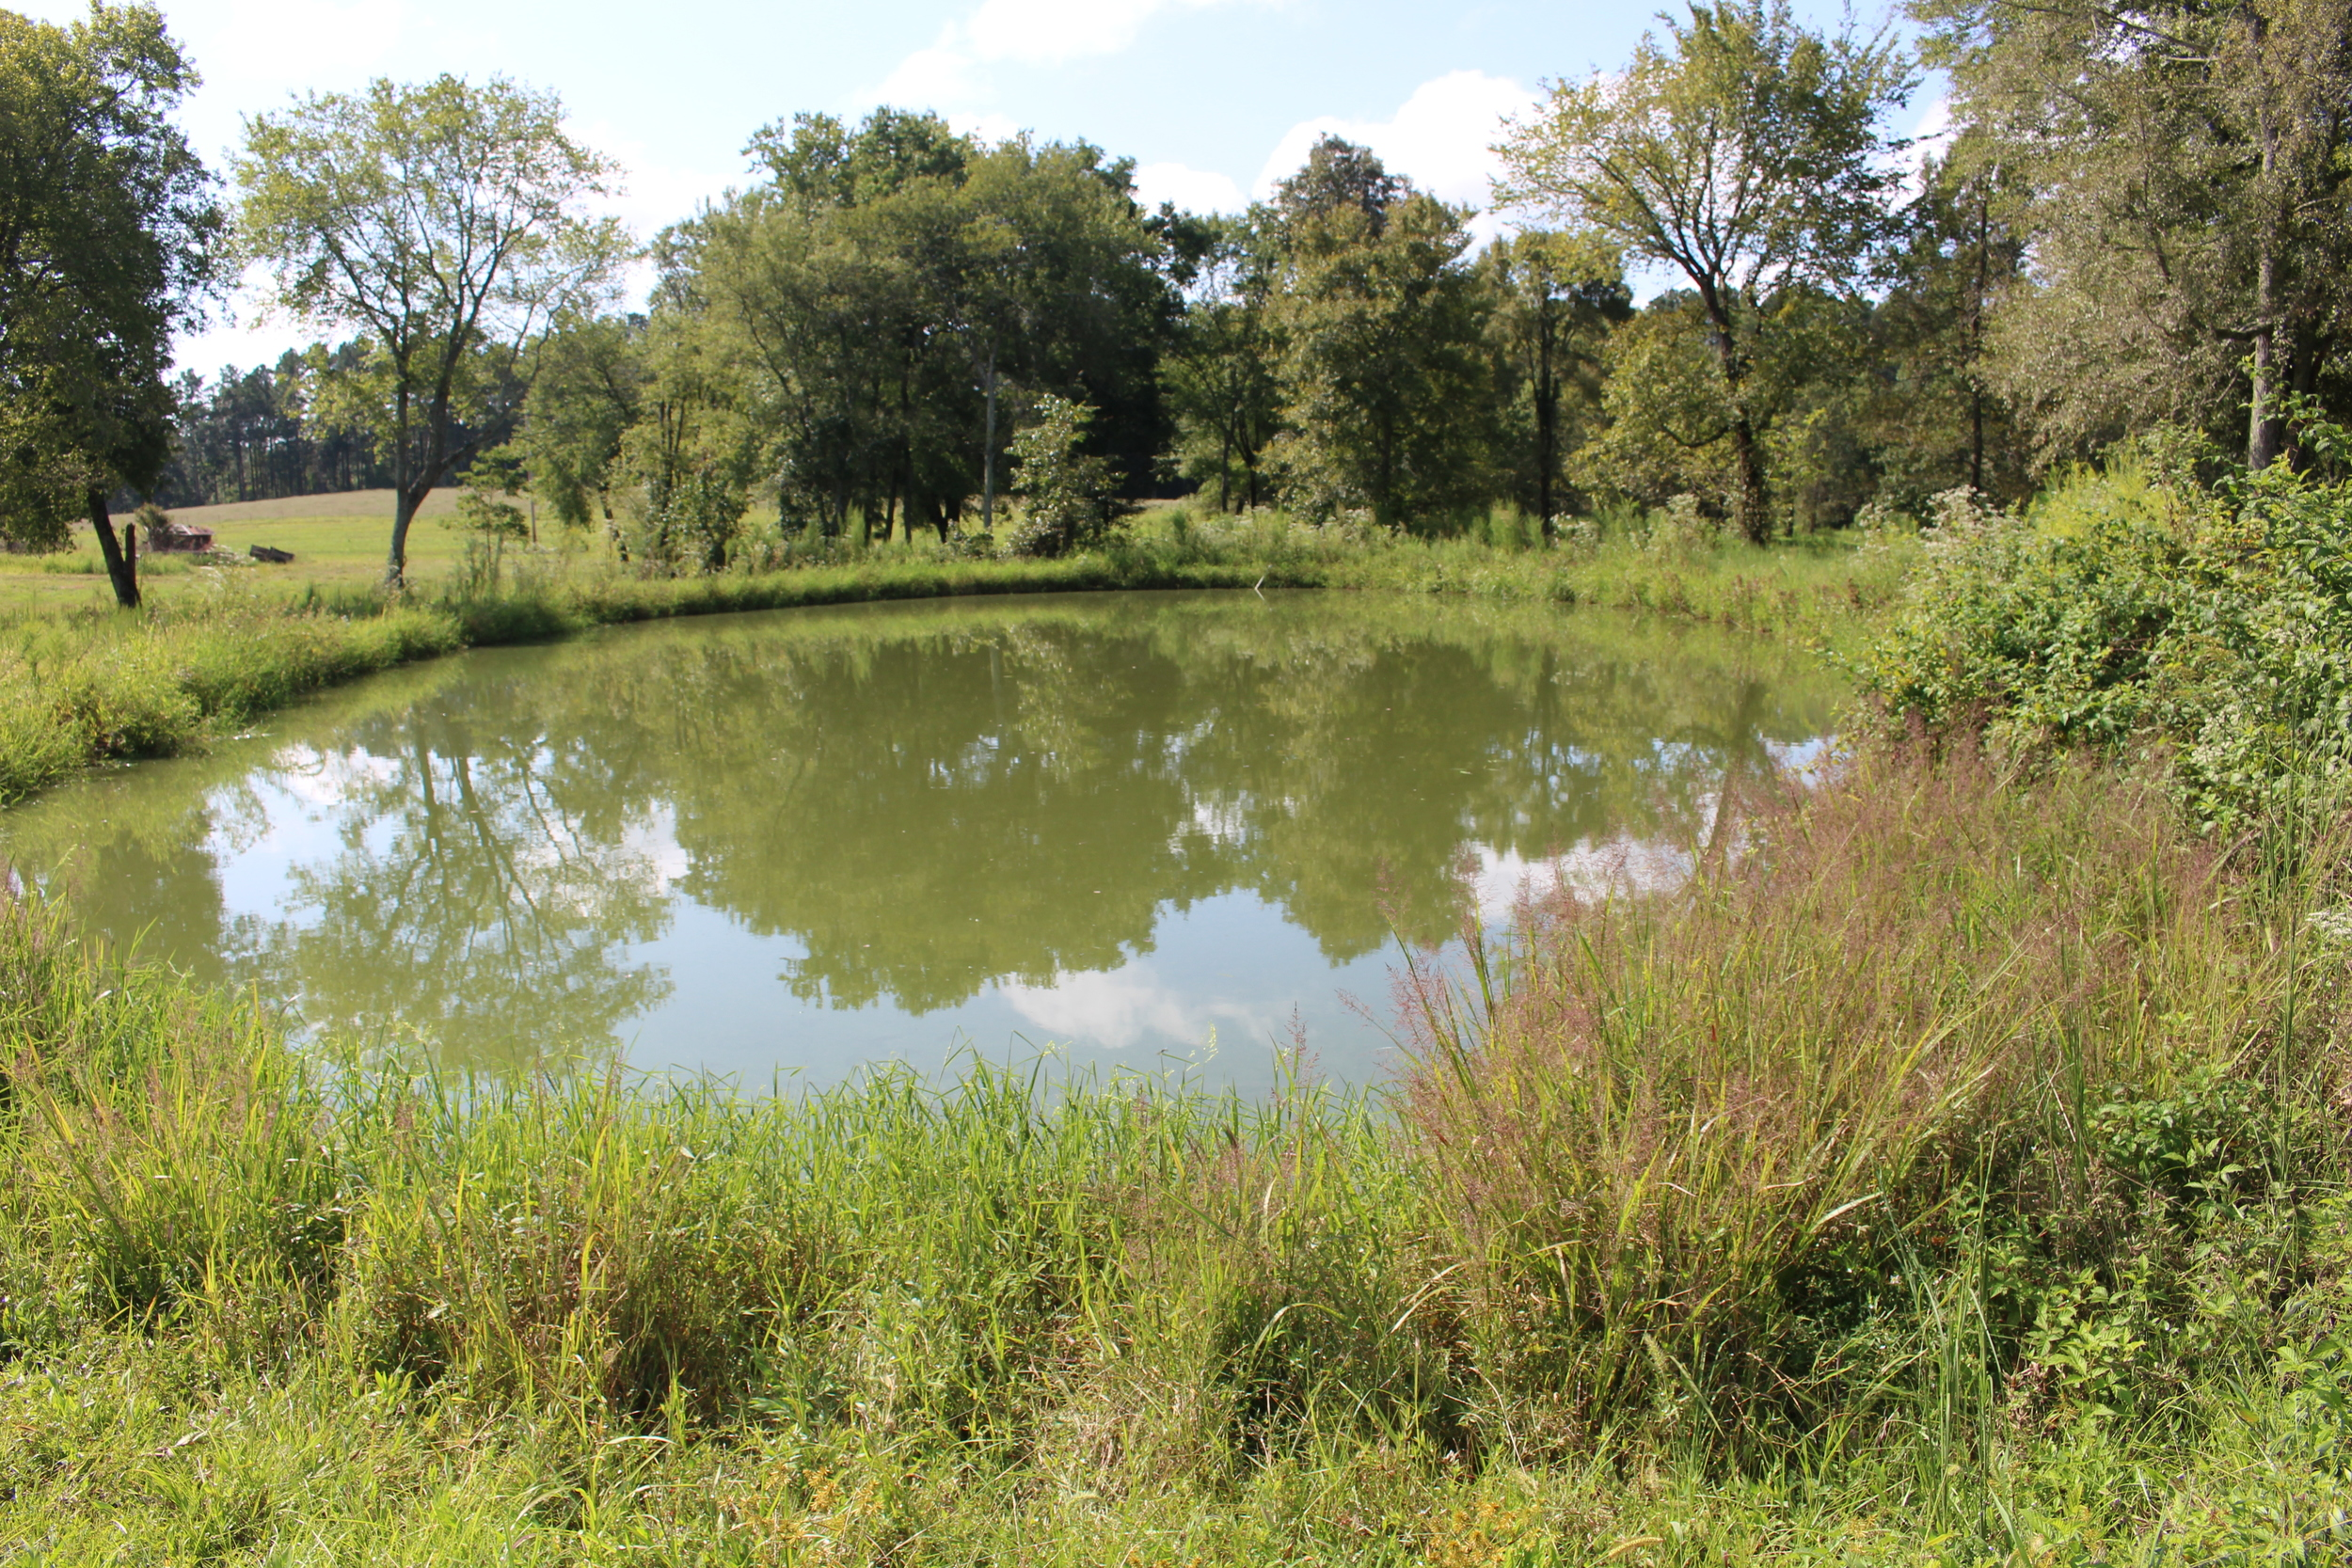 IMG_4861 Catfish pond.JPG